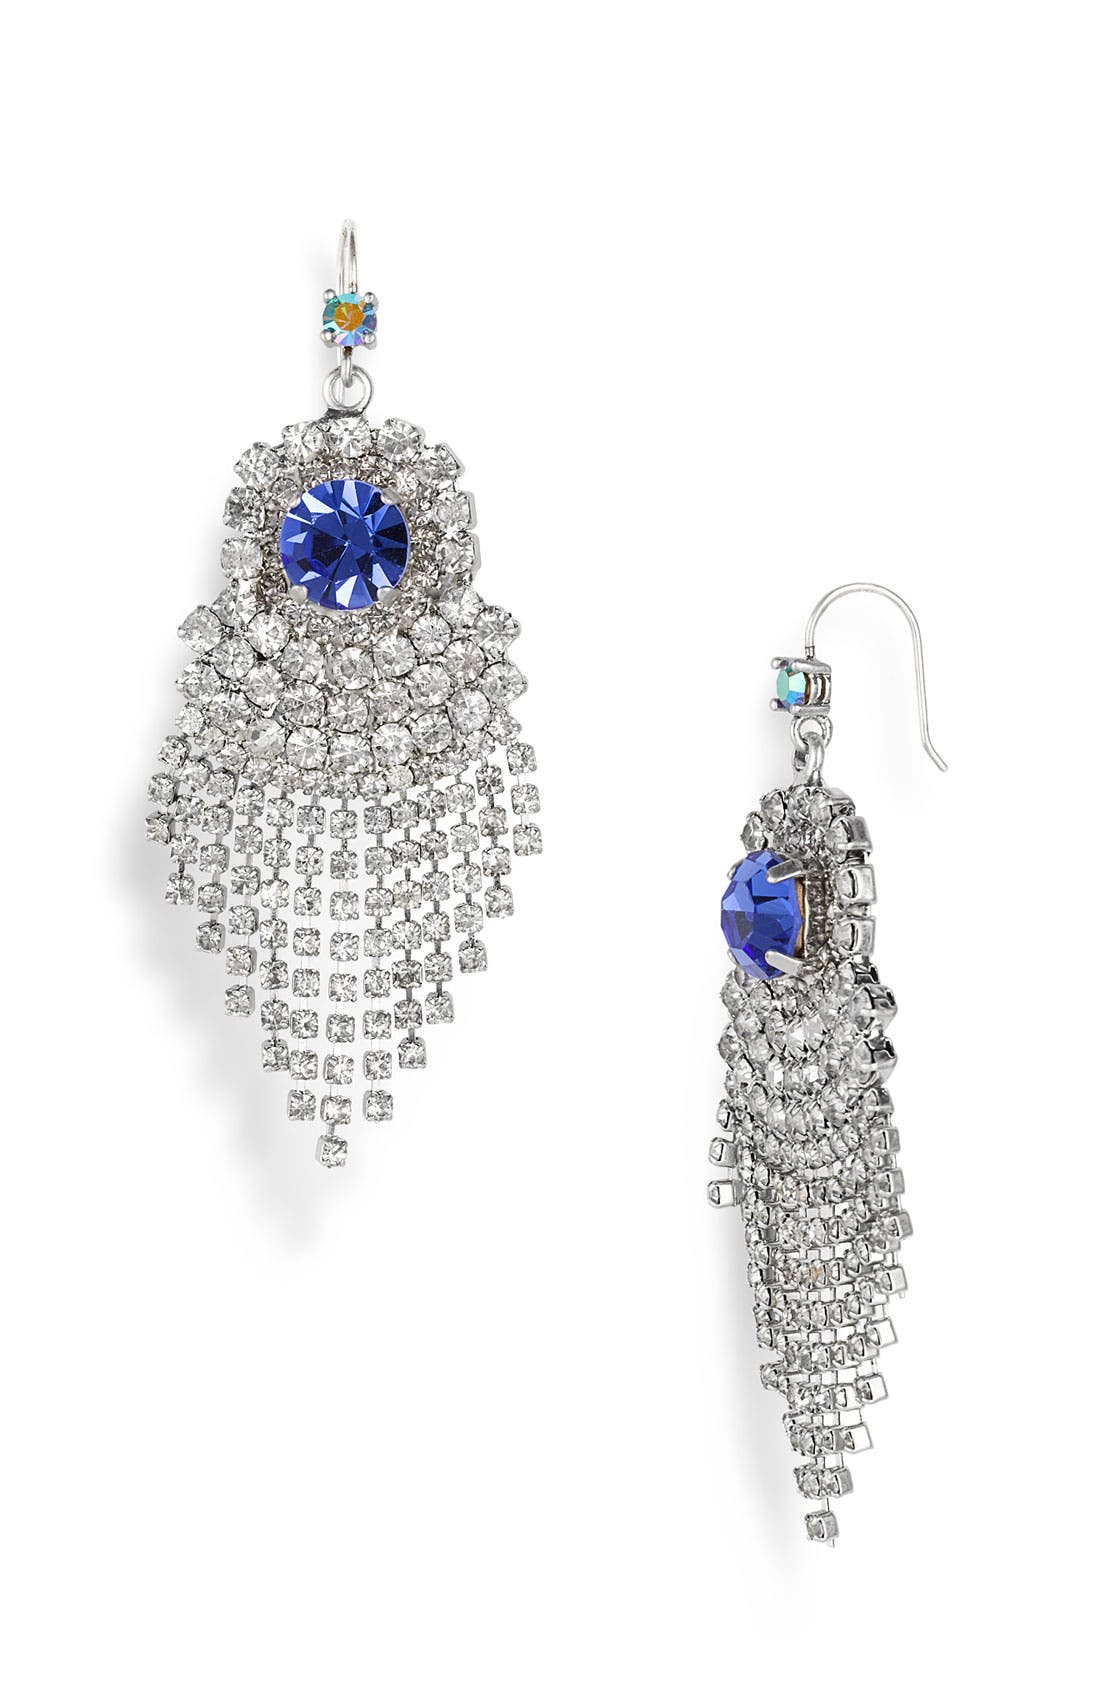 Main Image - Juicy Couture 'Hard Core Couture' Chandelier Fringe Earrings